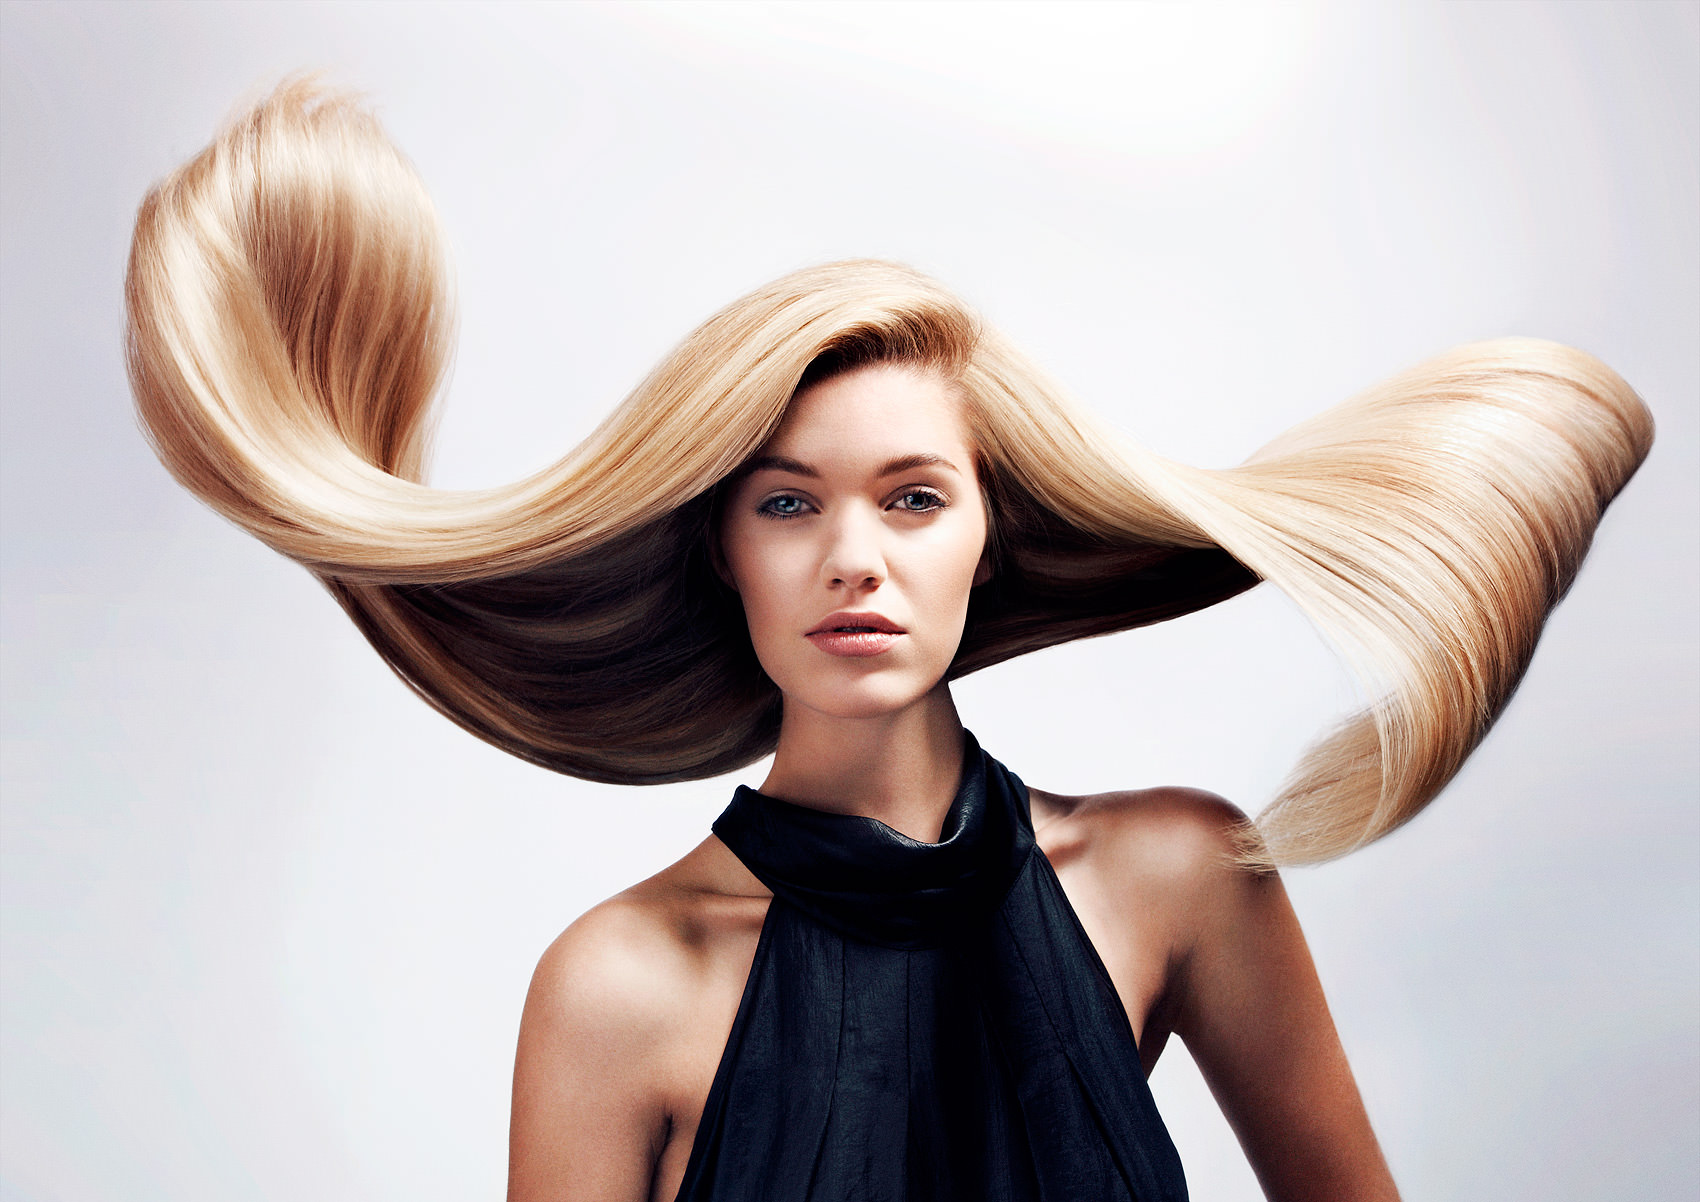 Hairstyles Photography All Secrets Of